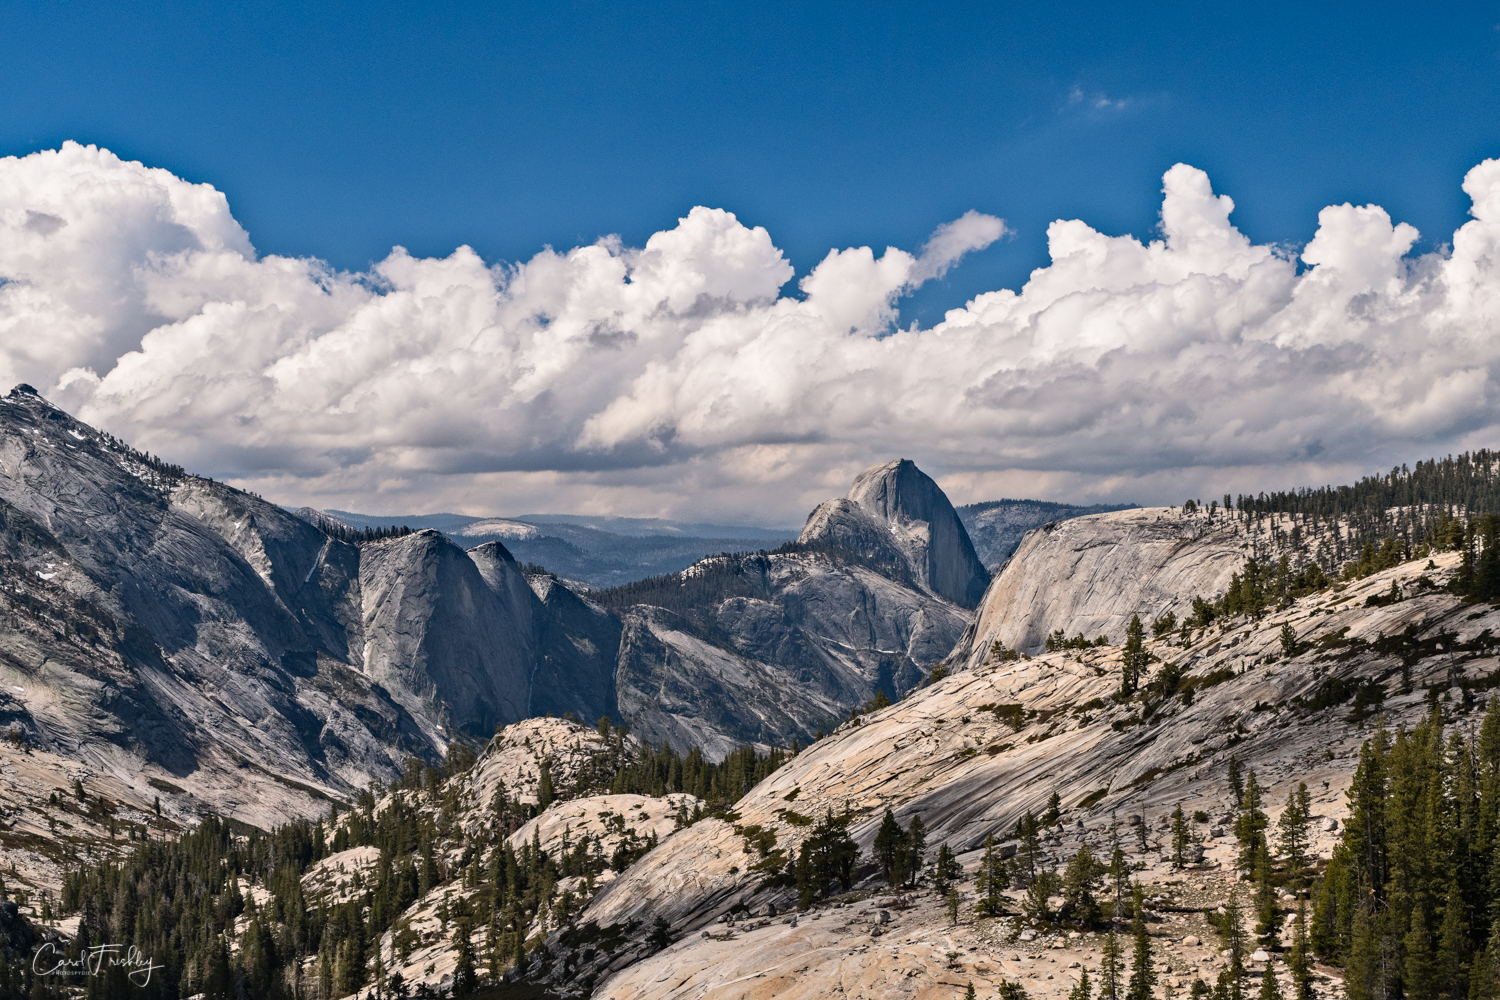 One the most important features of this area of the Sierras is the great amount of granite. You can see it in the very smooth, treeless, gray colored mountain faces. Trees do their best to make use of small pockets of soil.